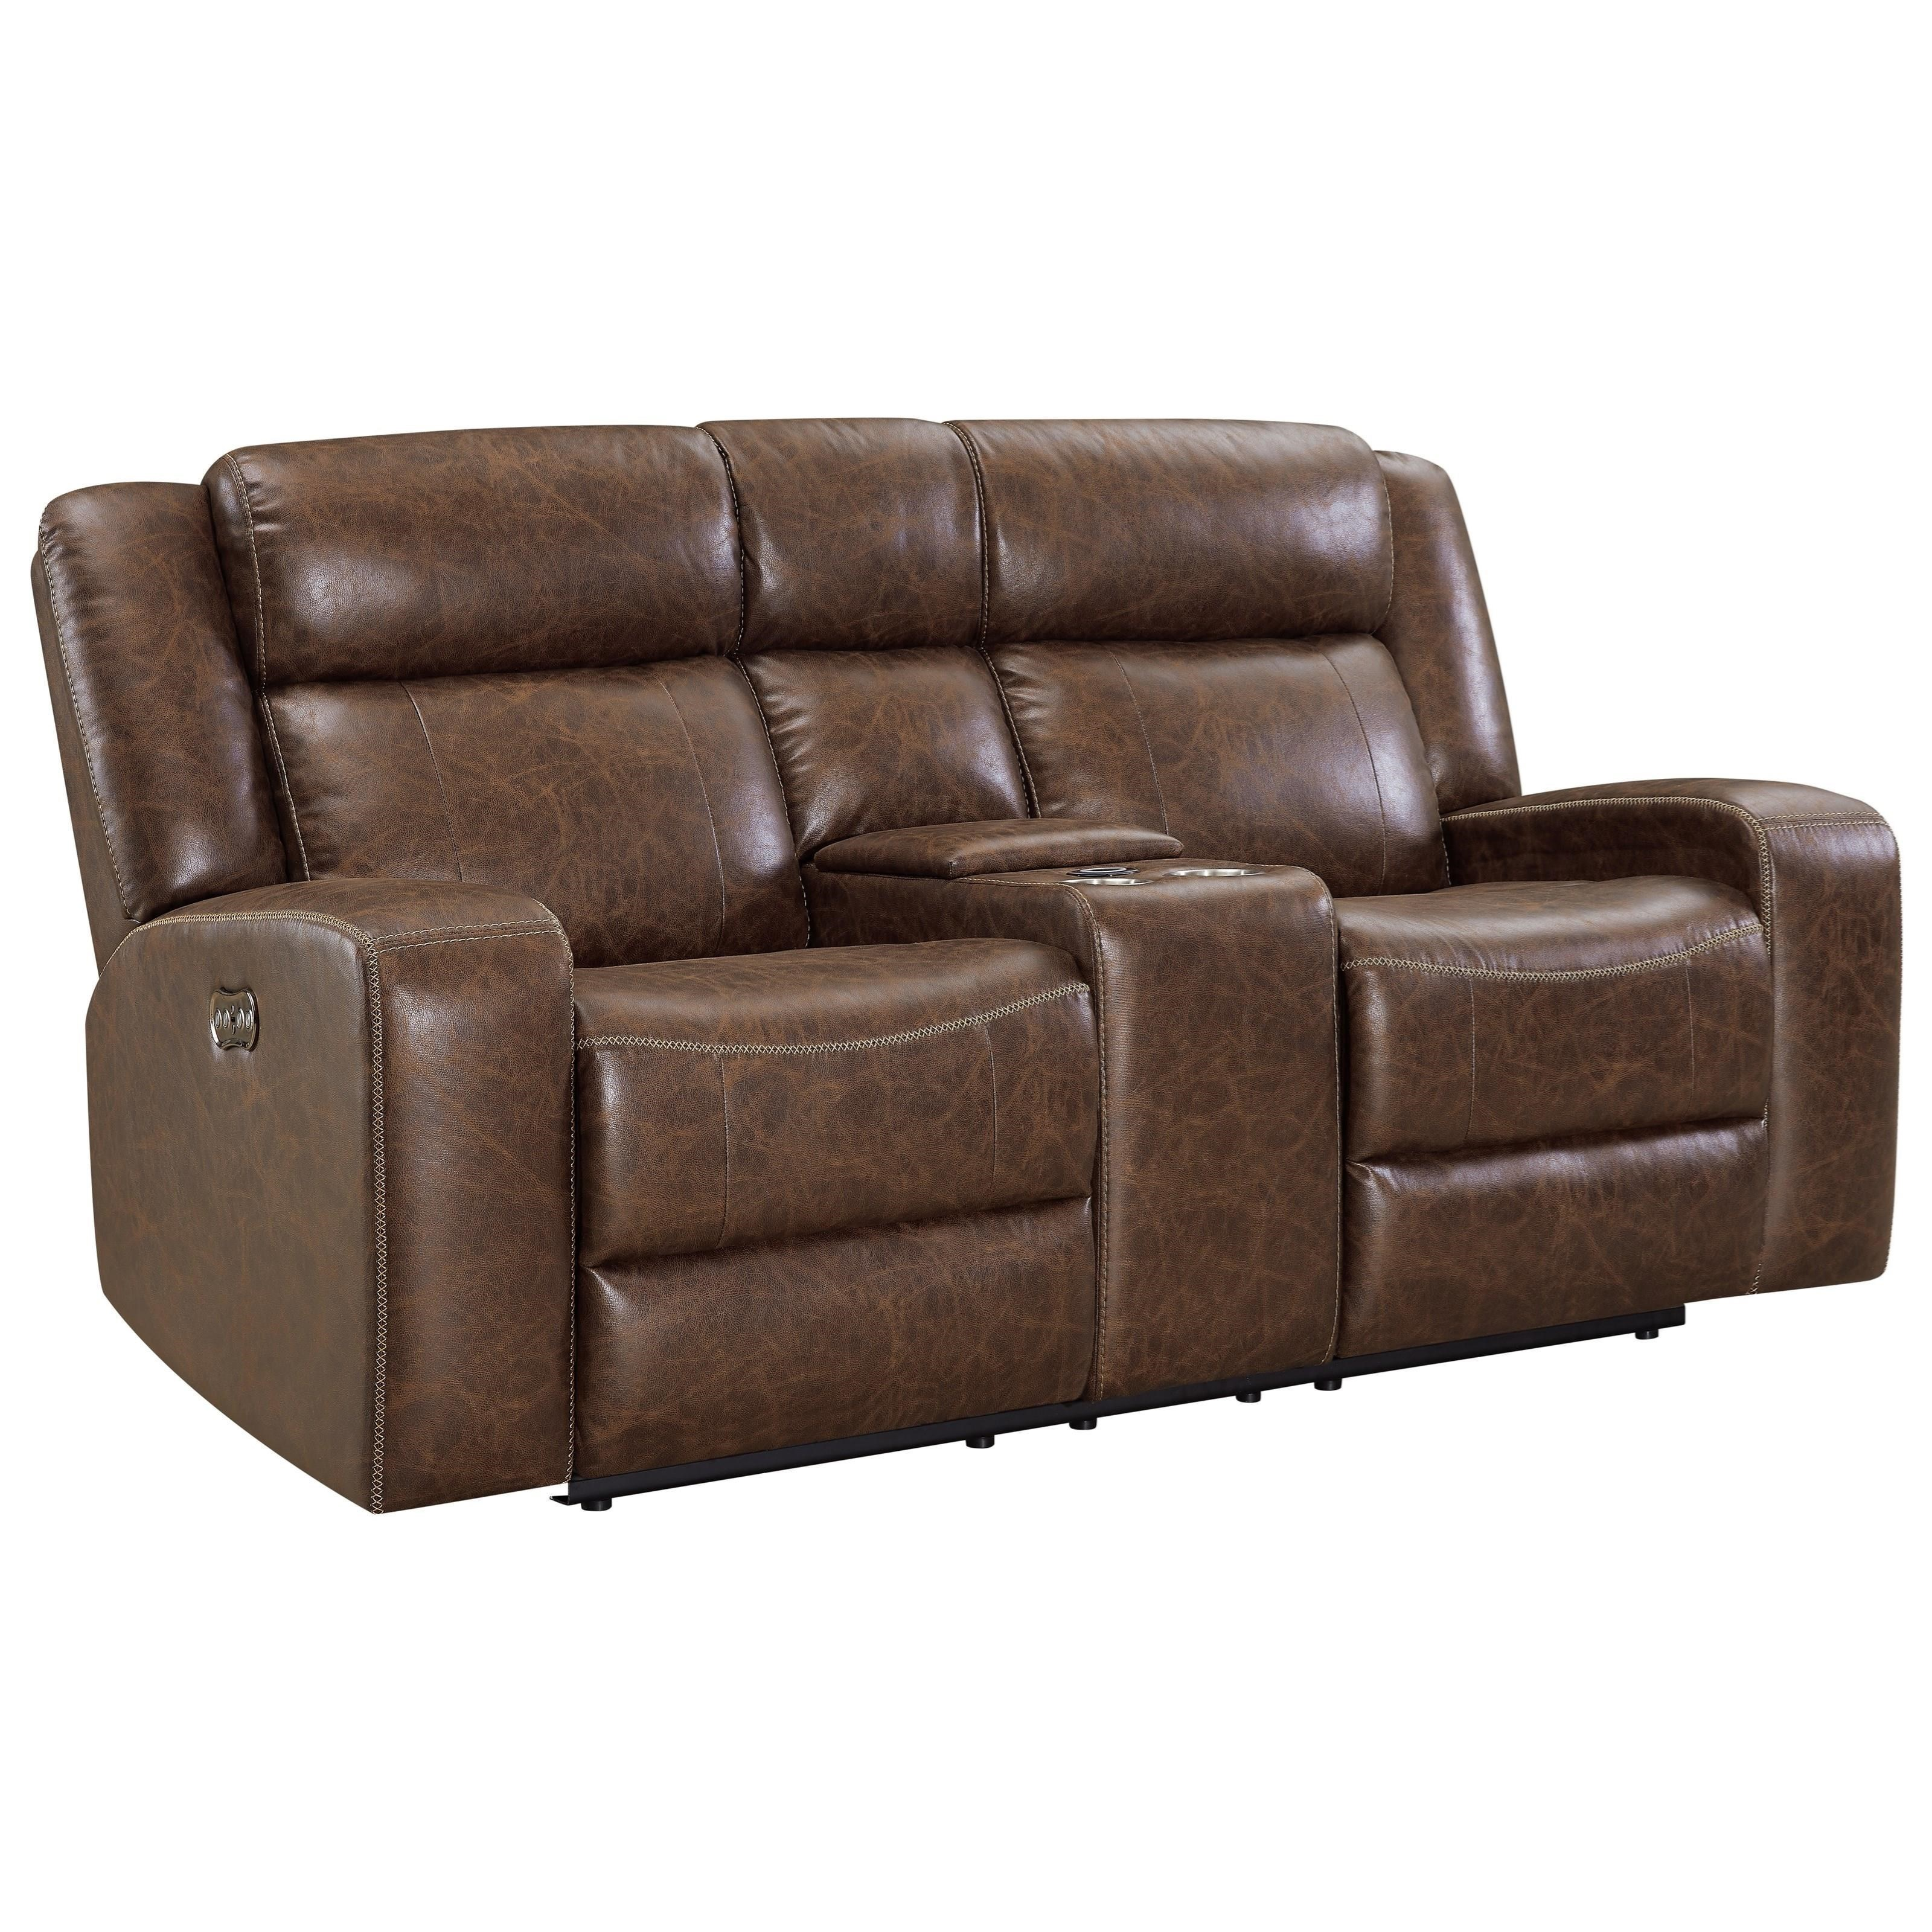 Atticus Dual Recliner Console Loveseat by New Classic at Beds N Stuff